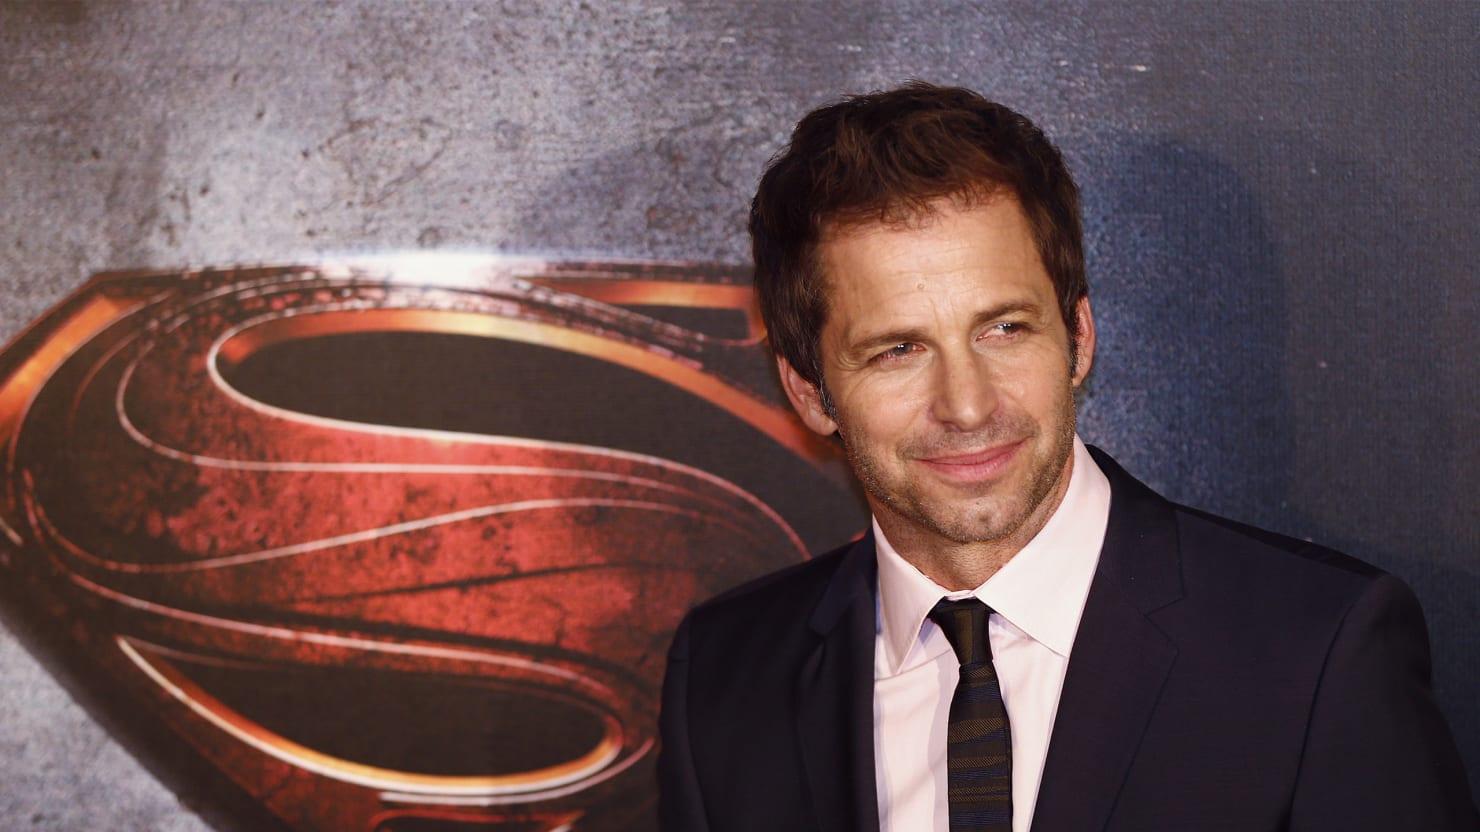 Zack Snyder: 'Justice League' Film Will Explore 'the Mythology' of Doomsday